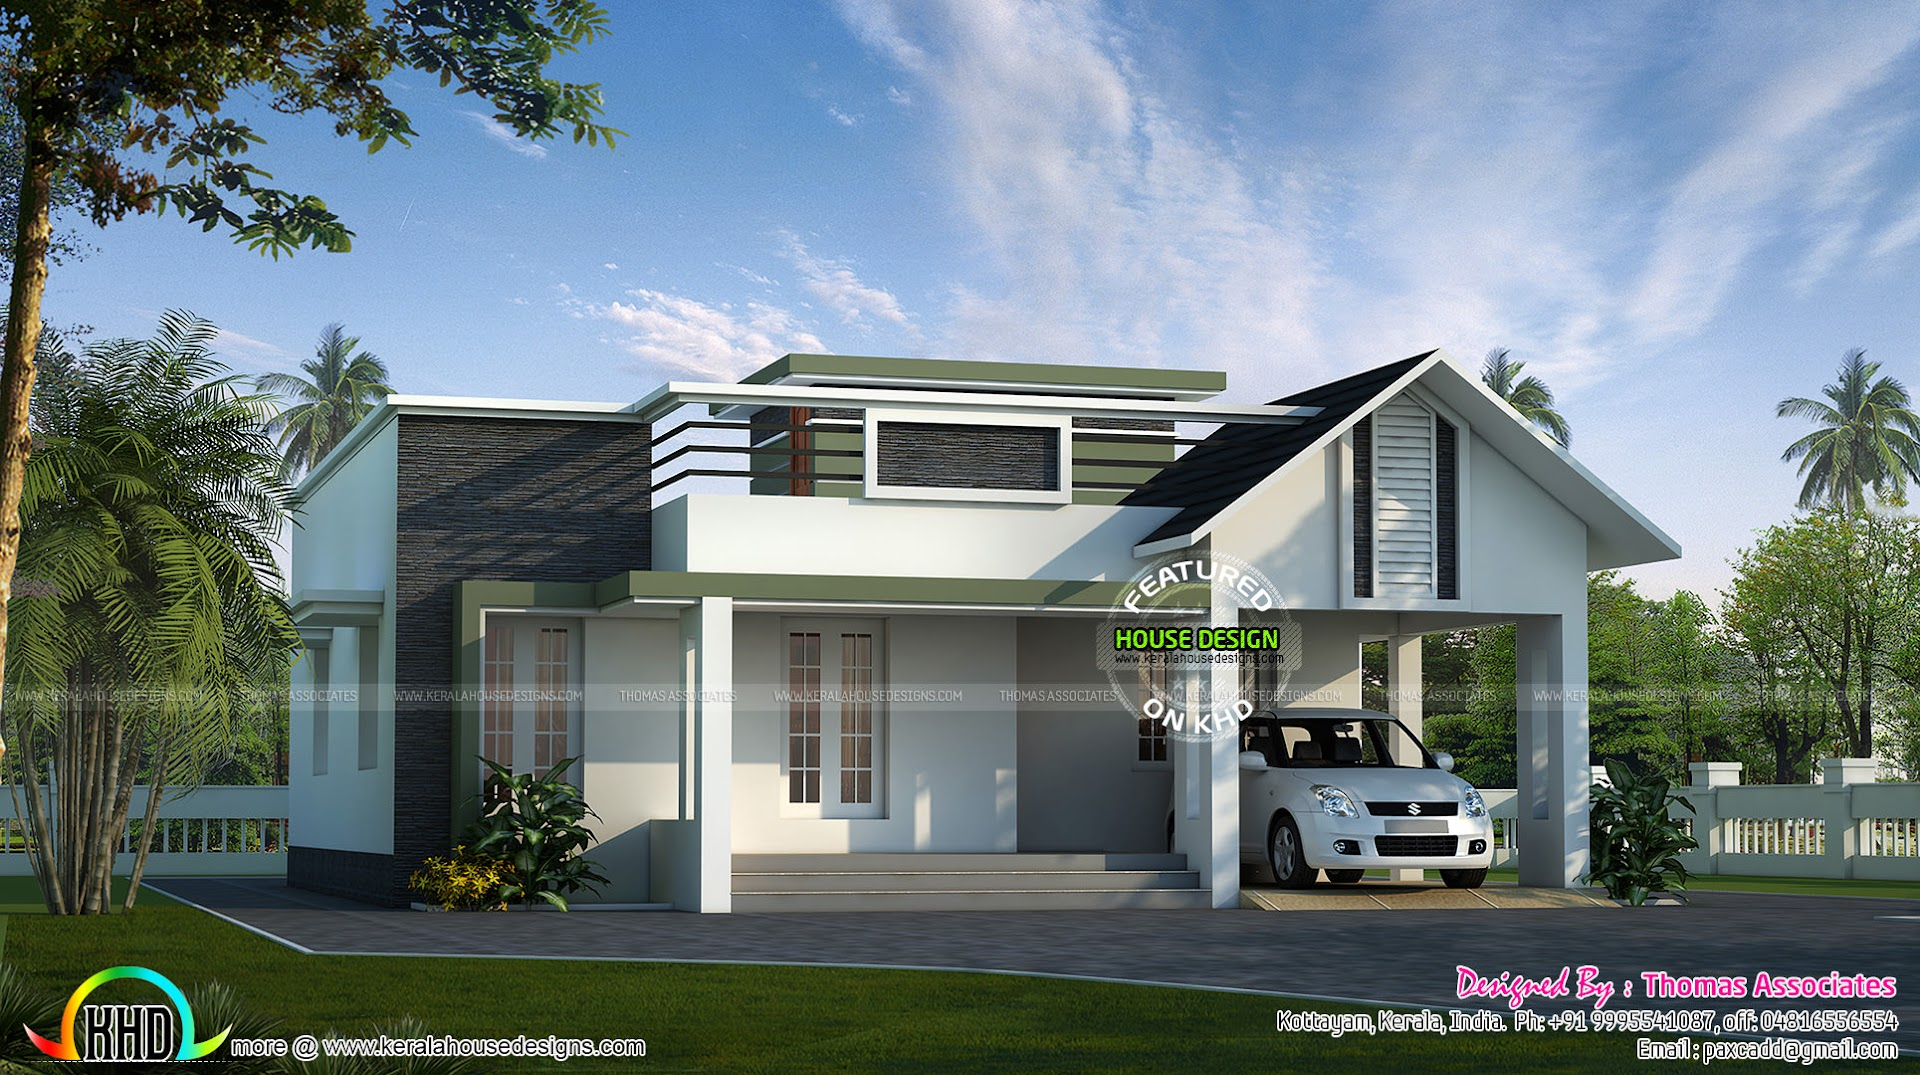 Small simple 1200 sq ft house kerala home design and for One floor house photos